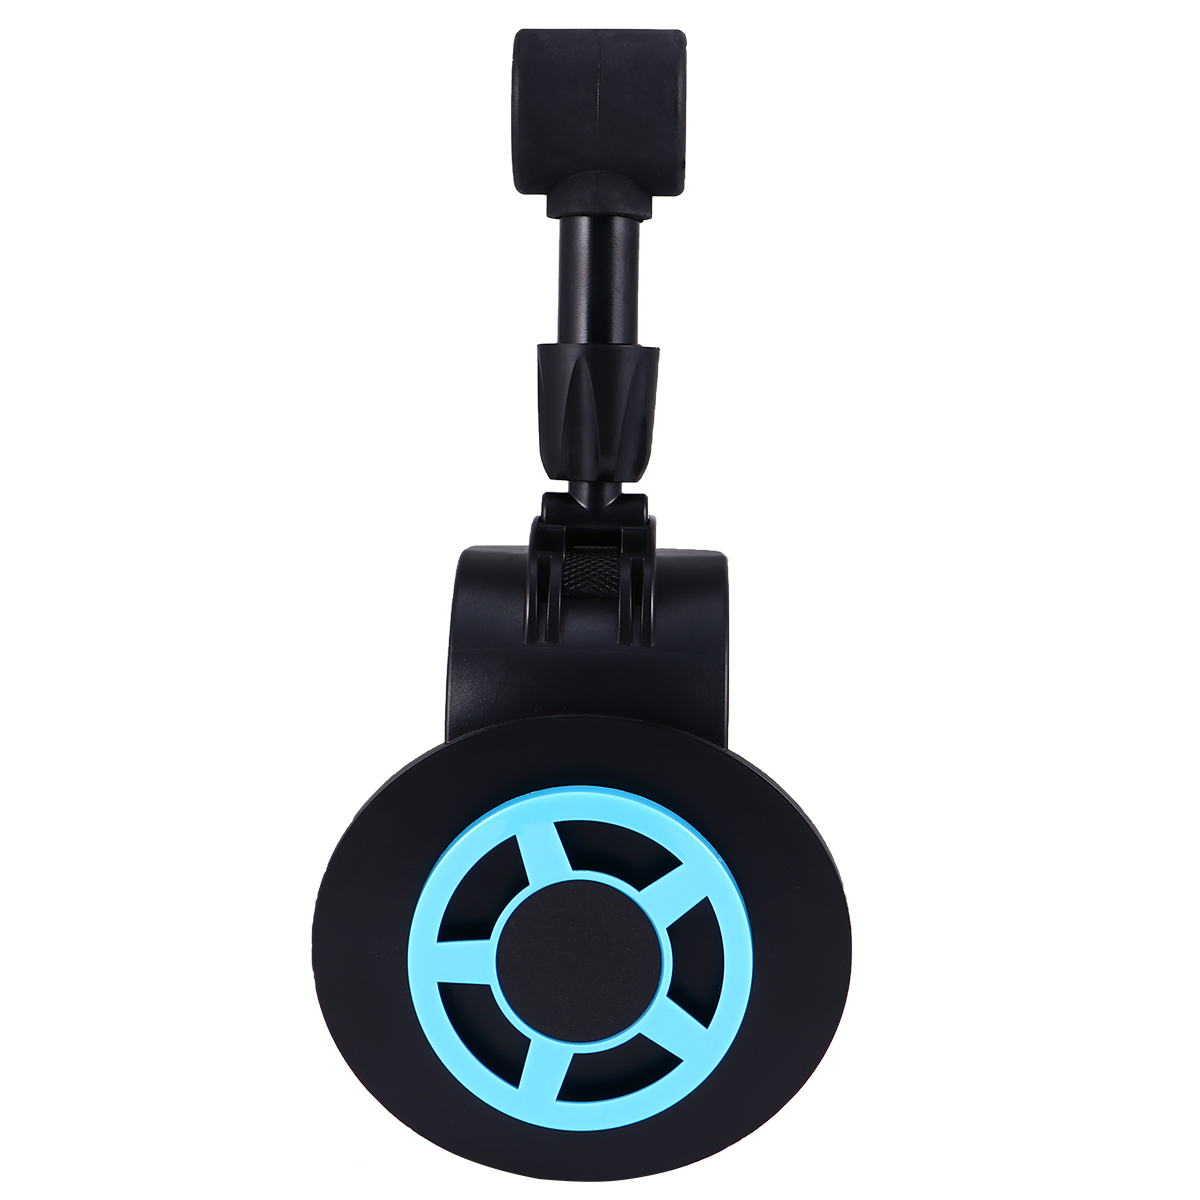 1 Pc Phone Support Phone Holder Anti-skid Anti-shake Steering Wheel Cellphone Stand Phone Accessory for Automobile